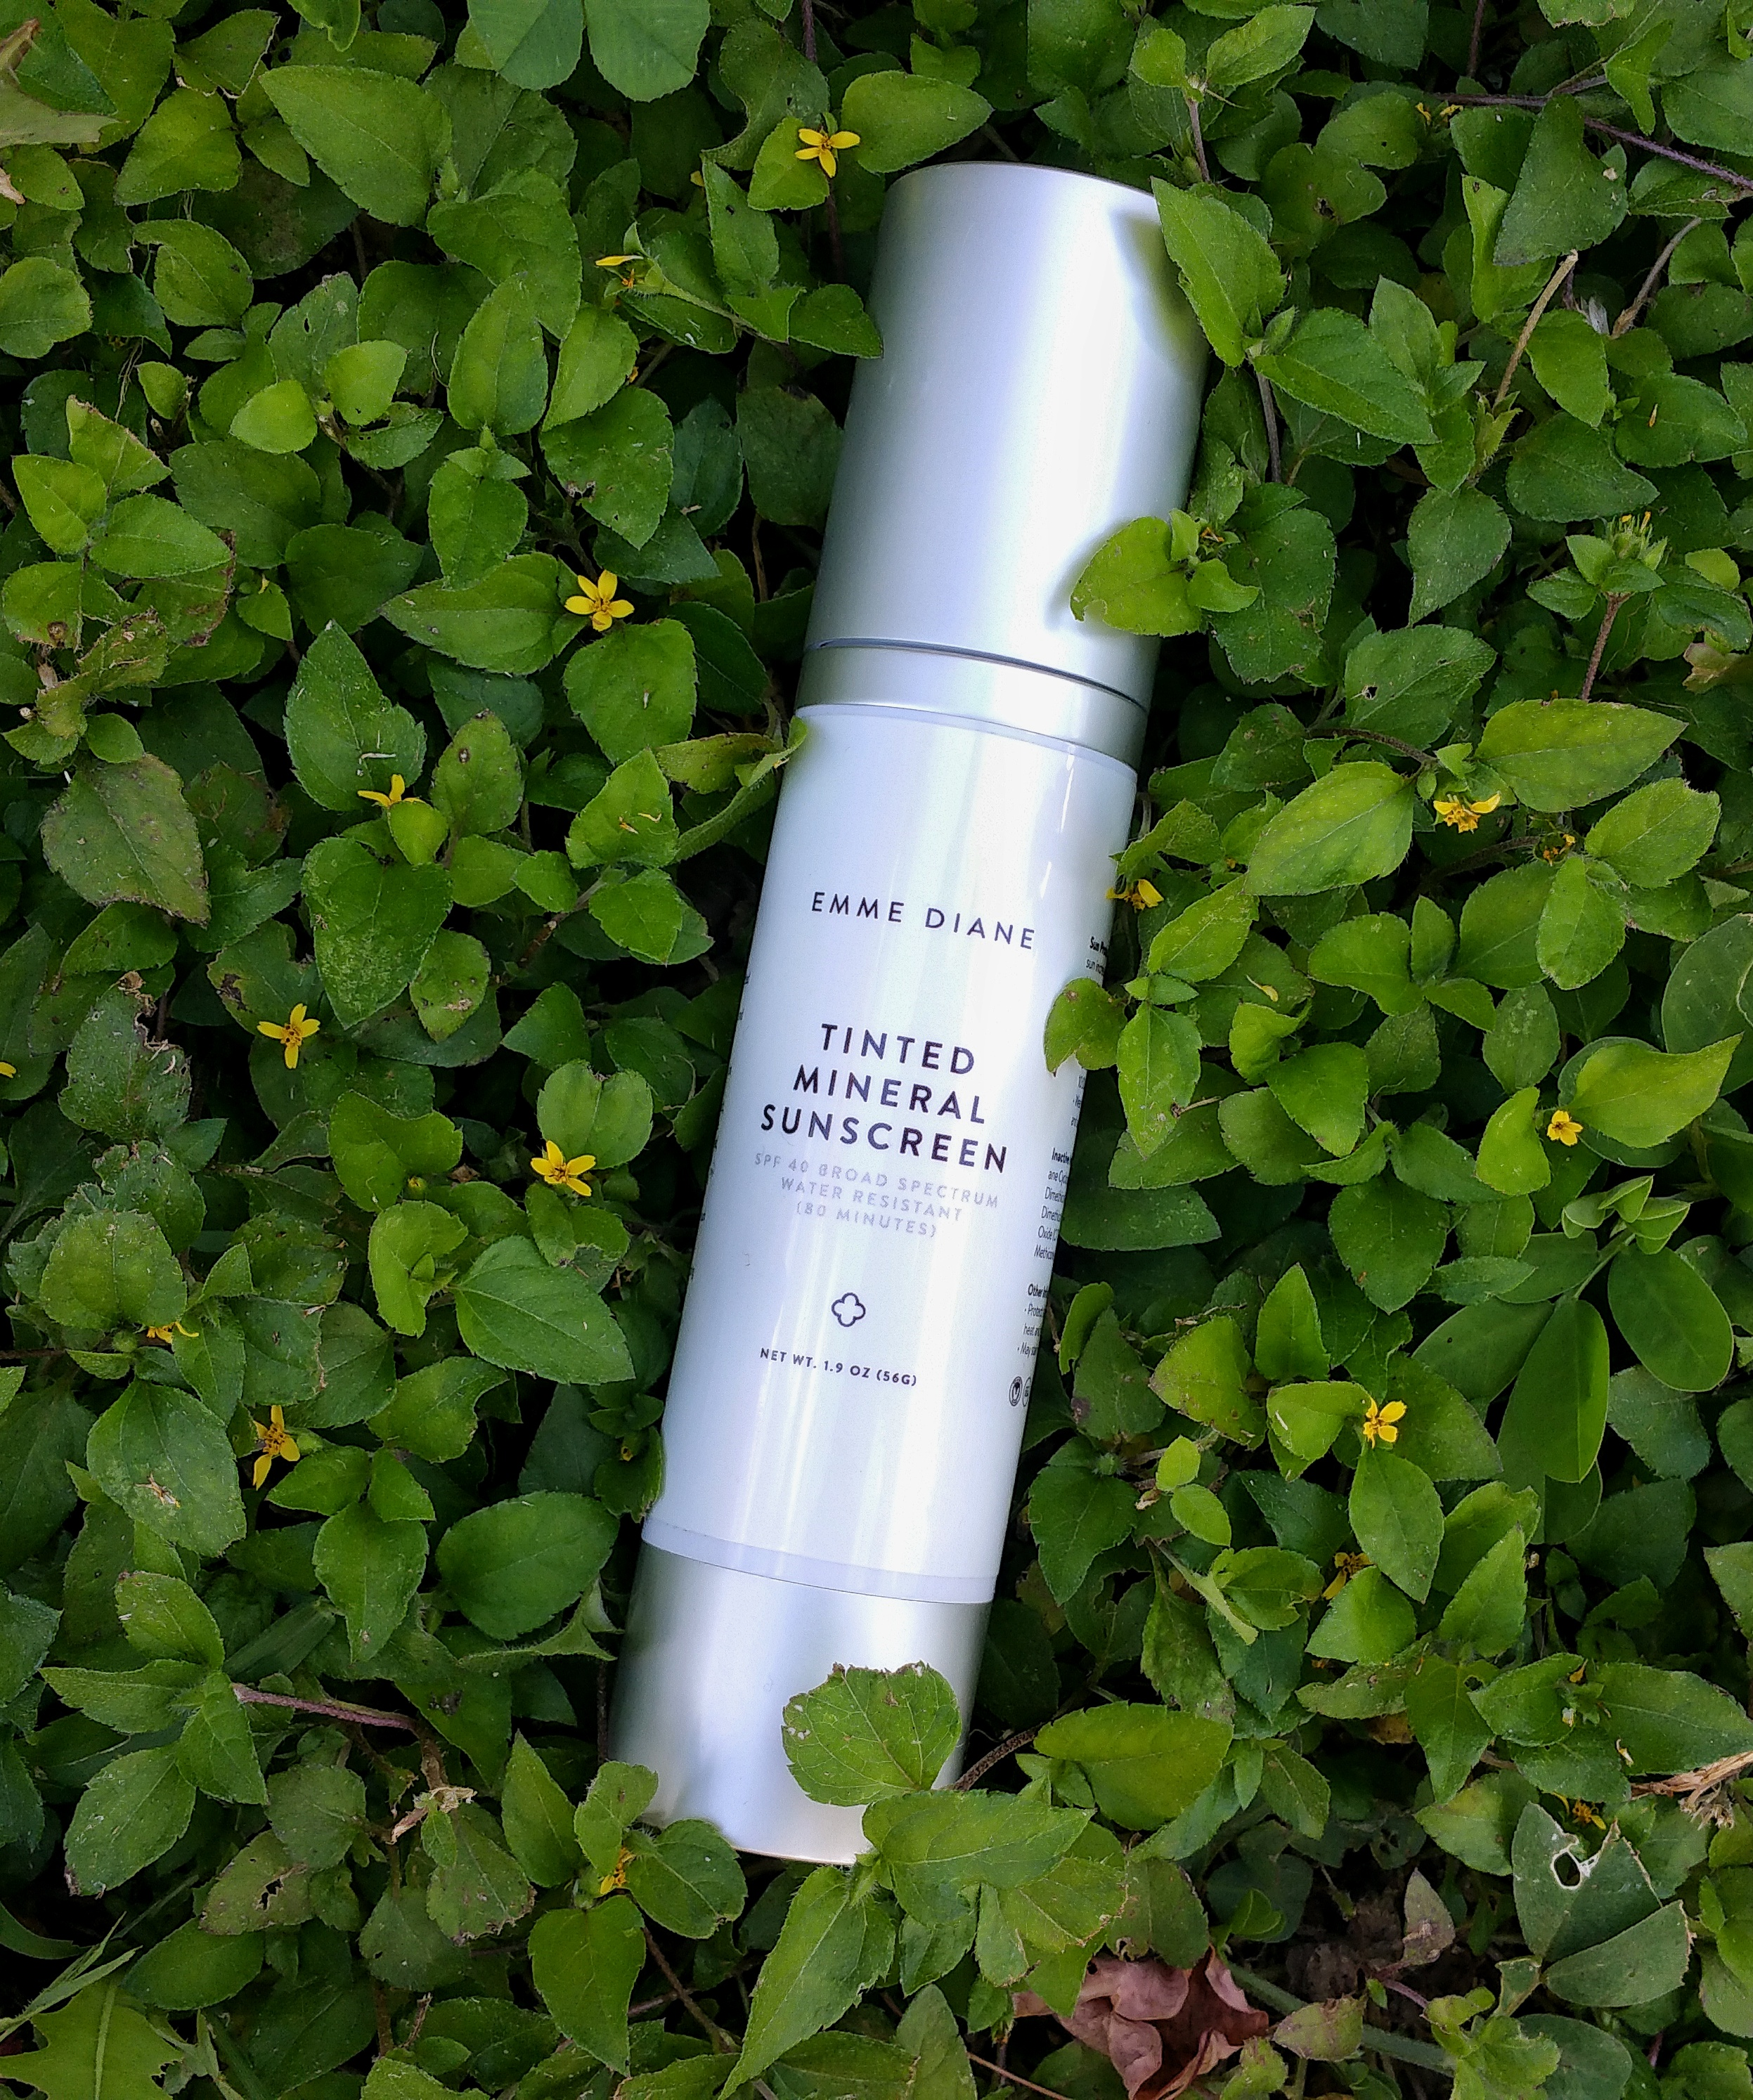 emme diane, tinted mineral spf, skin care, skincare, spf 40, tinted mineral spf 40, beauty, makeup, mattifying spf, sheer tint spf, tinted moisturizer, physical sunscreen, water resistant sunscreen, good for the ocean, non-comedogenic, silky finish, susncreen, sweat resistant,